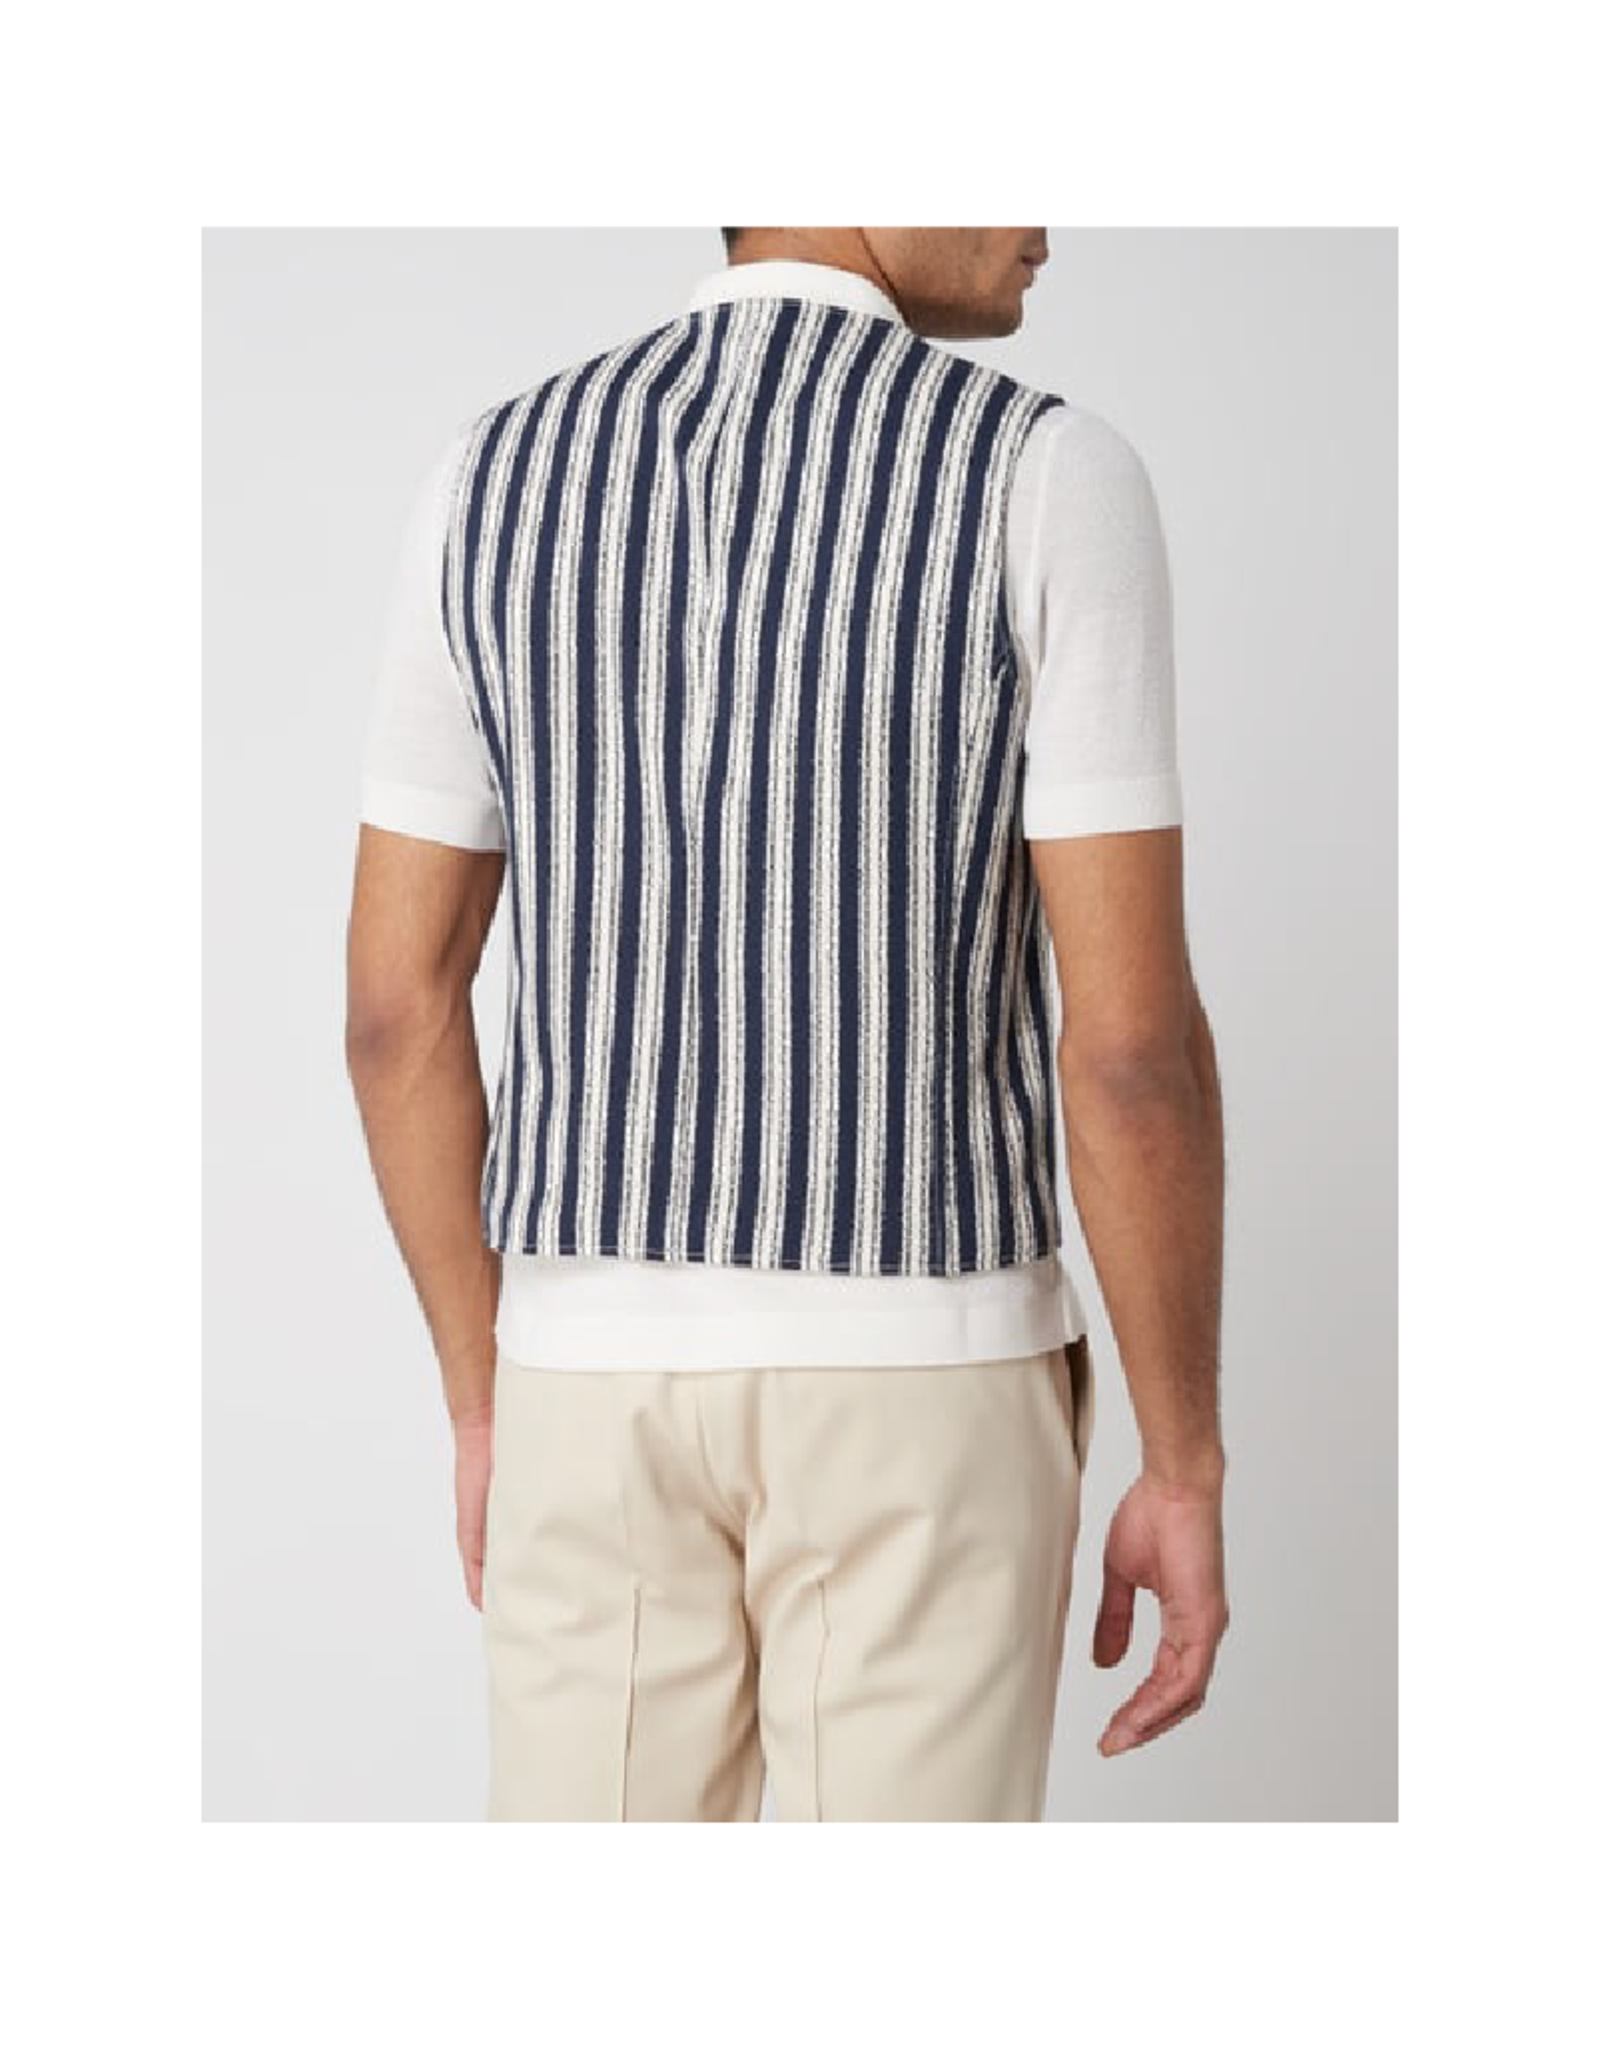 Club Of Gents Mosely Tailored Cotton Vest